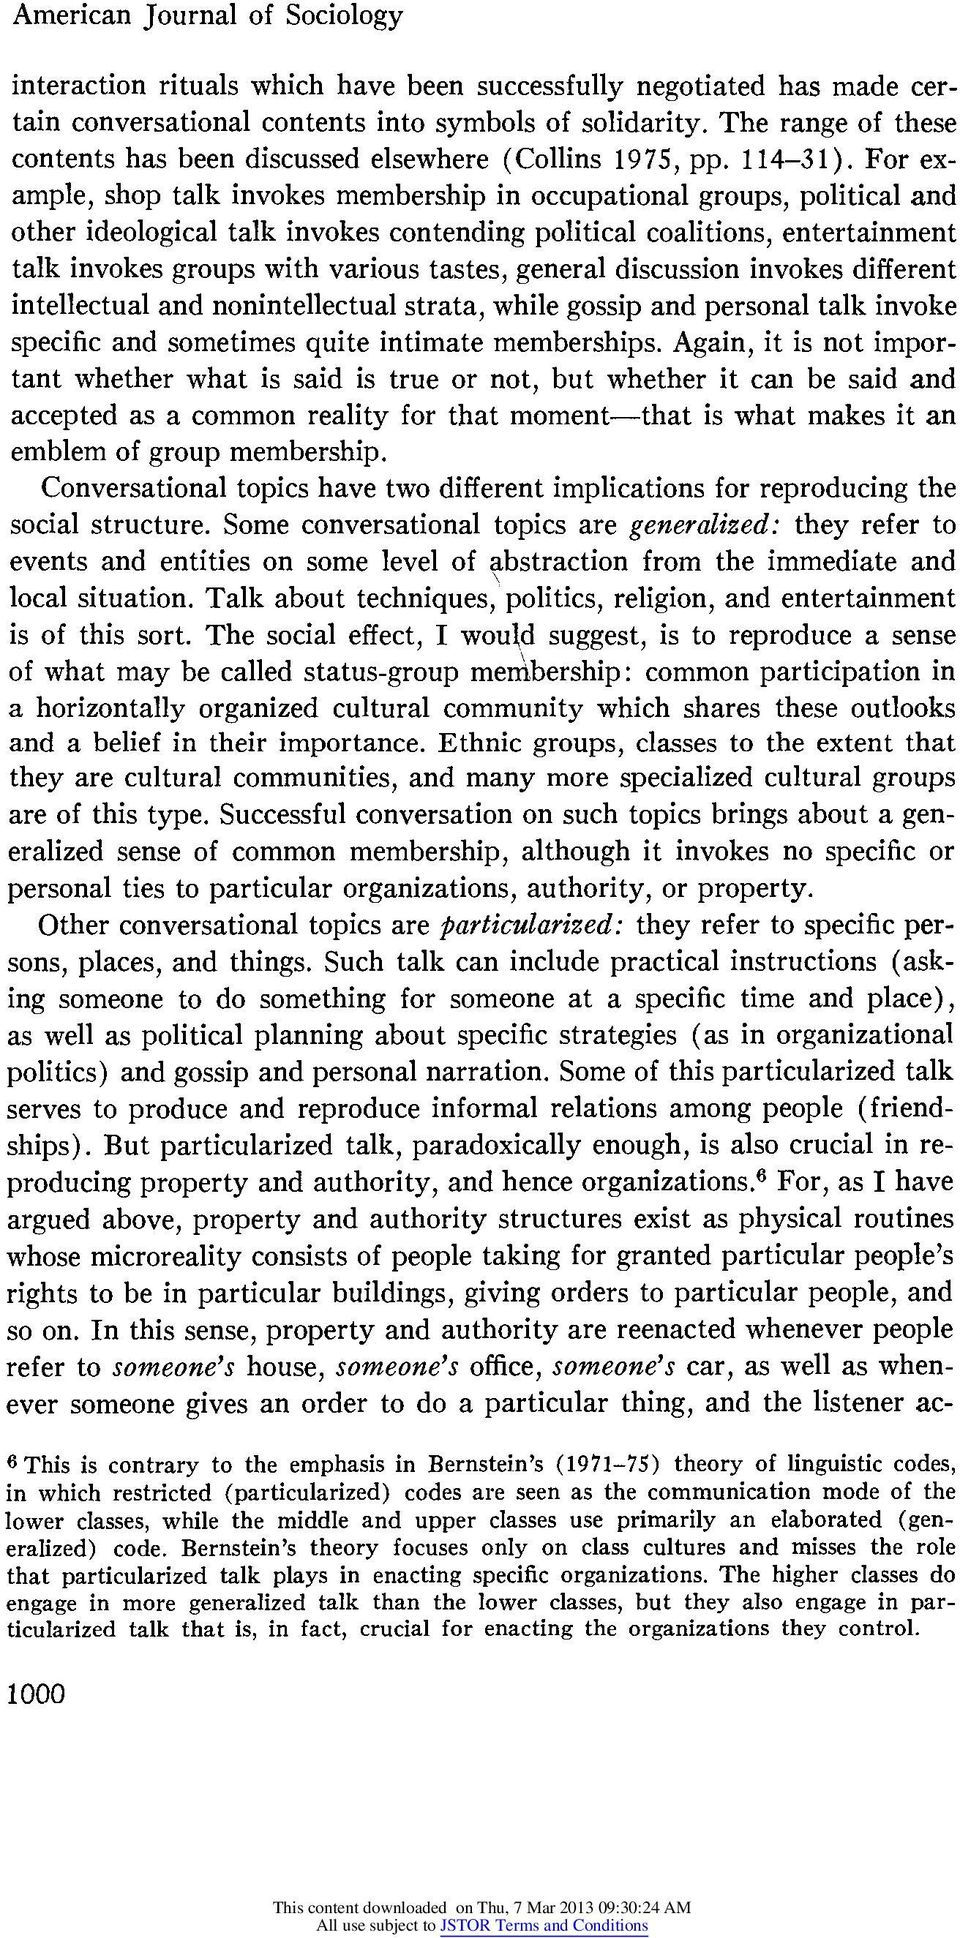 For example, shop talk invokes membership in occupational groups, political and other ideological talk invokes contending political coalitions, entertainment talk invokes groups with various tastes,